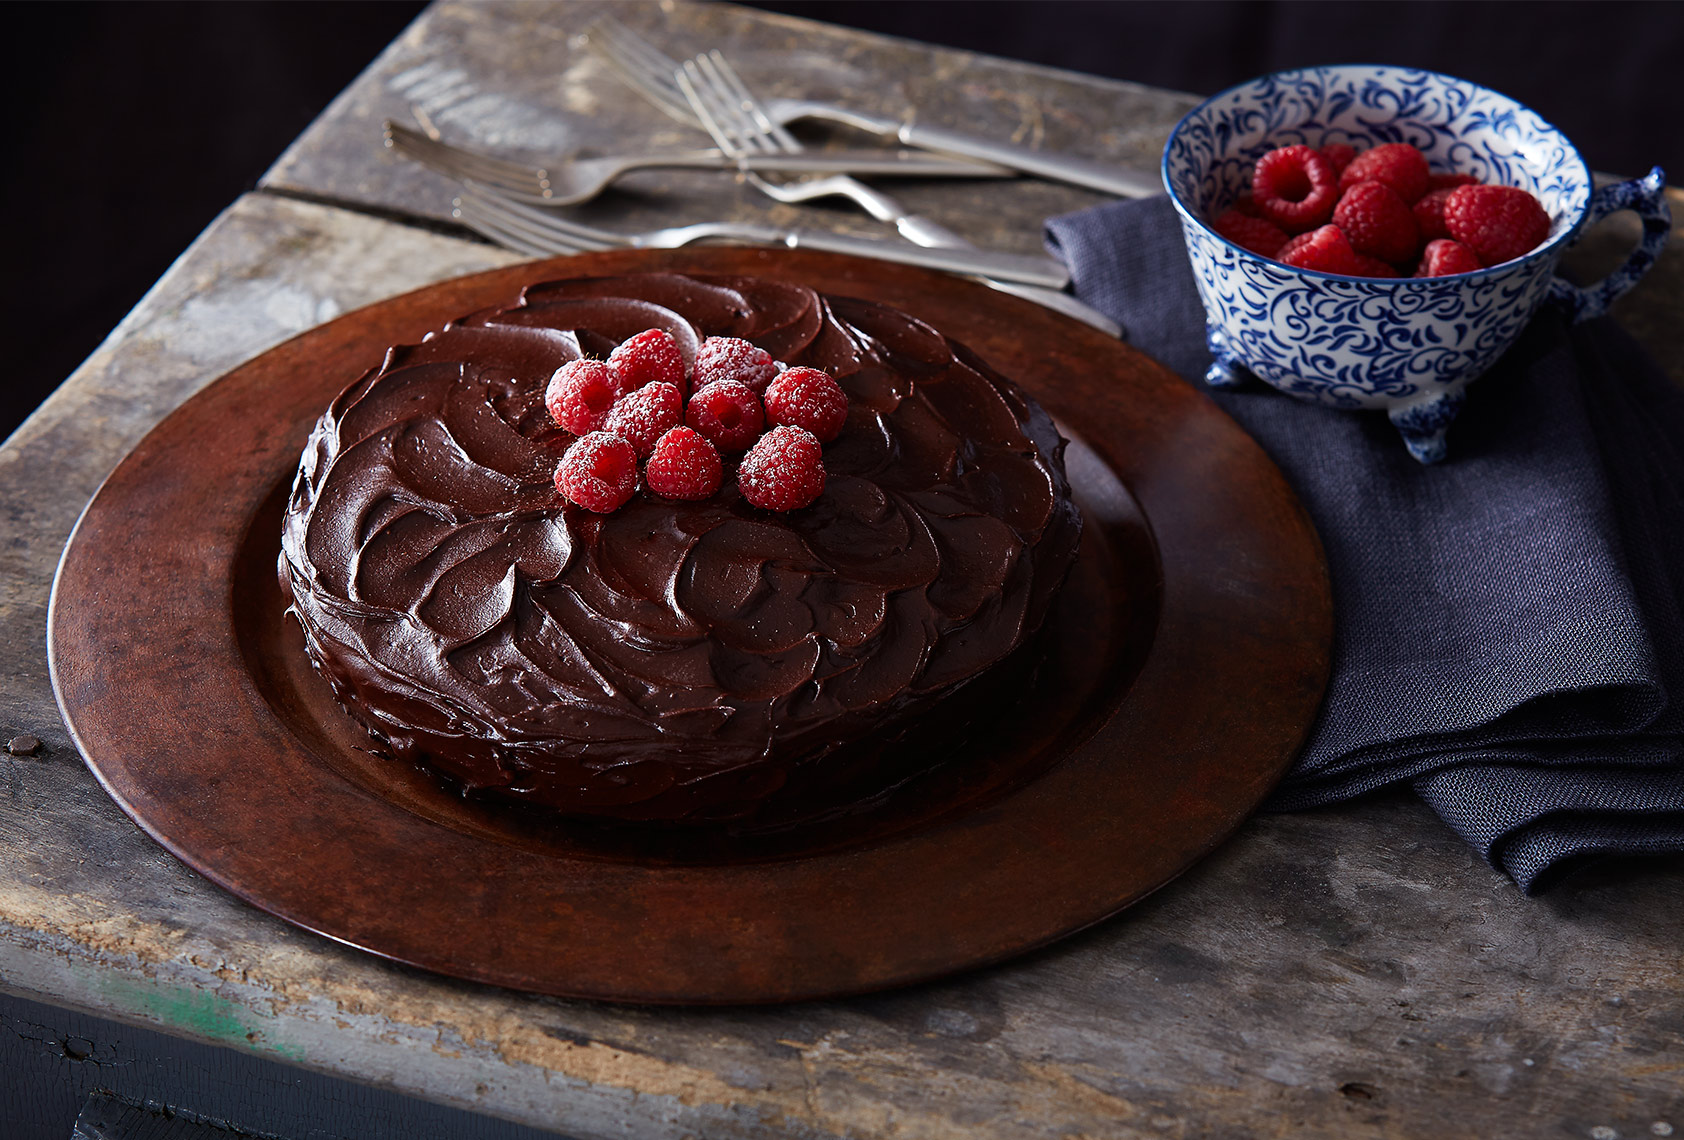 Cake-Chocolate_crop_Web